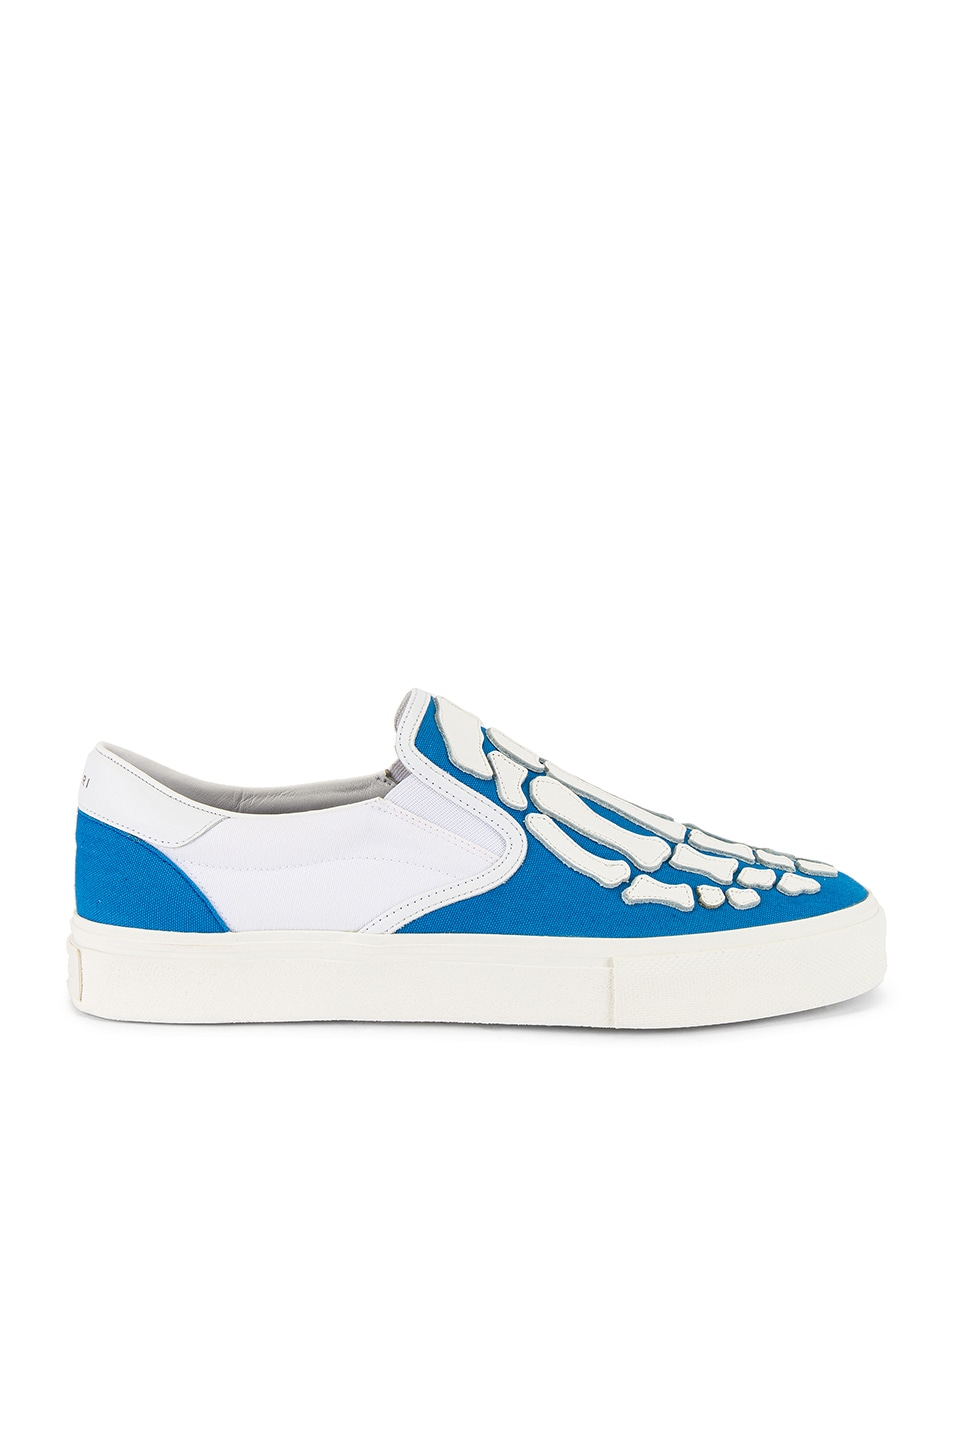 Image 2 of Amiri Skel Toe Slip On in Blue & White & White